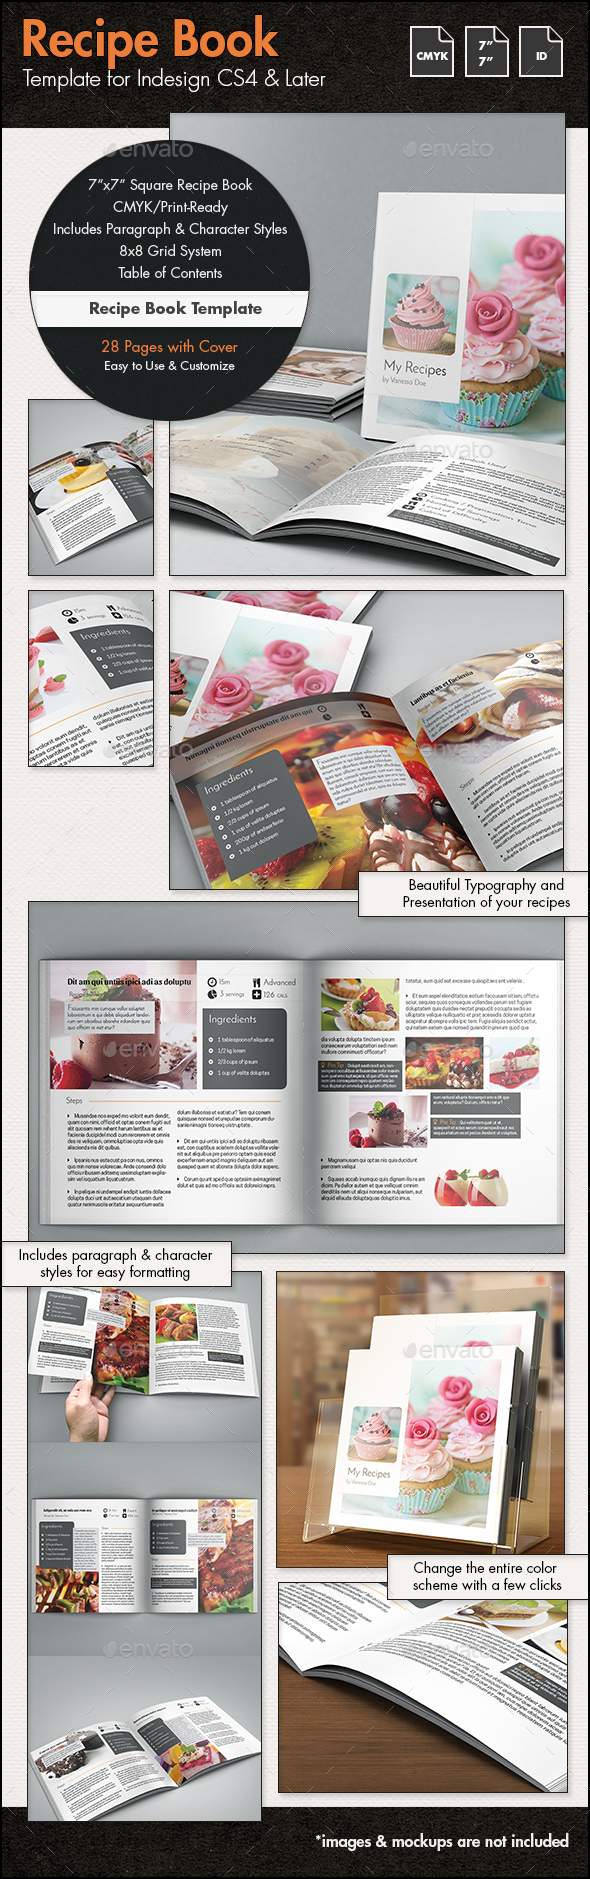 recipe book graphics designs templates from graphicriver